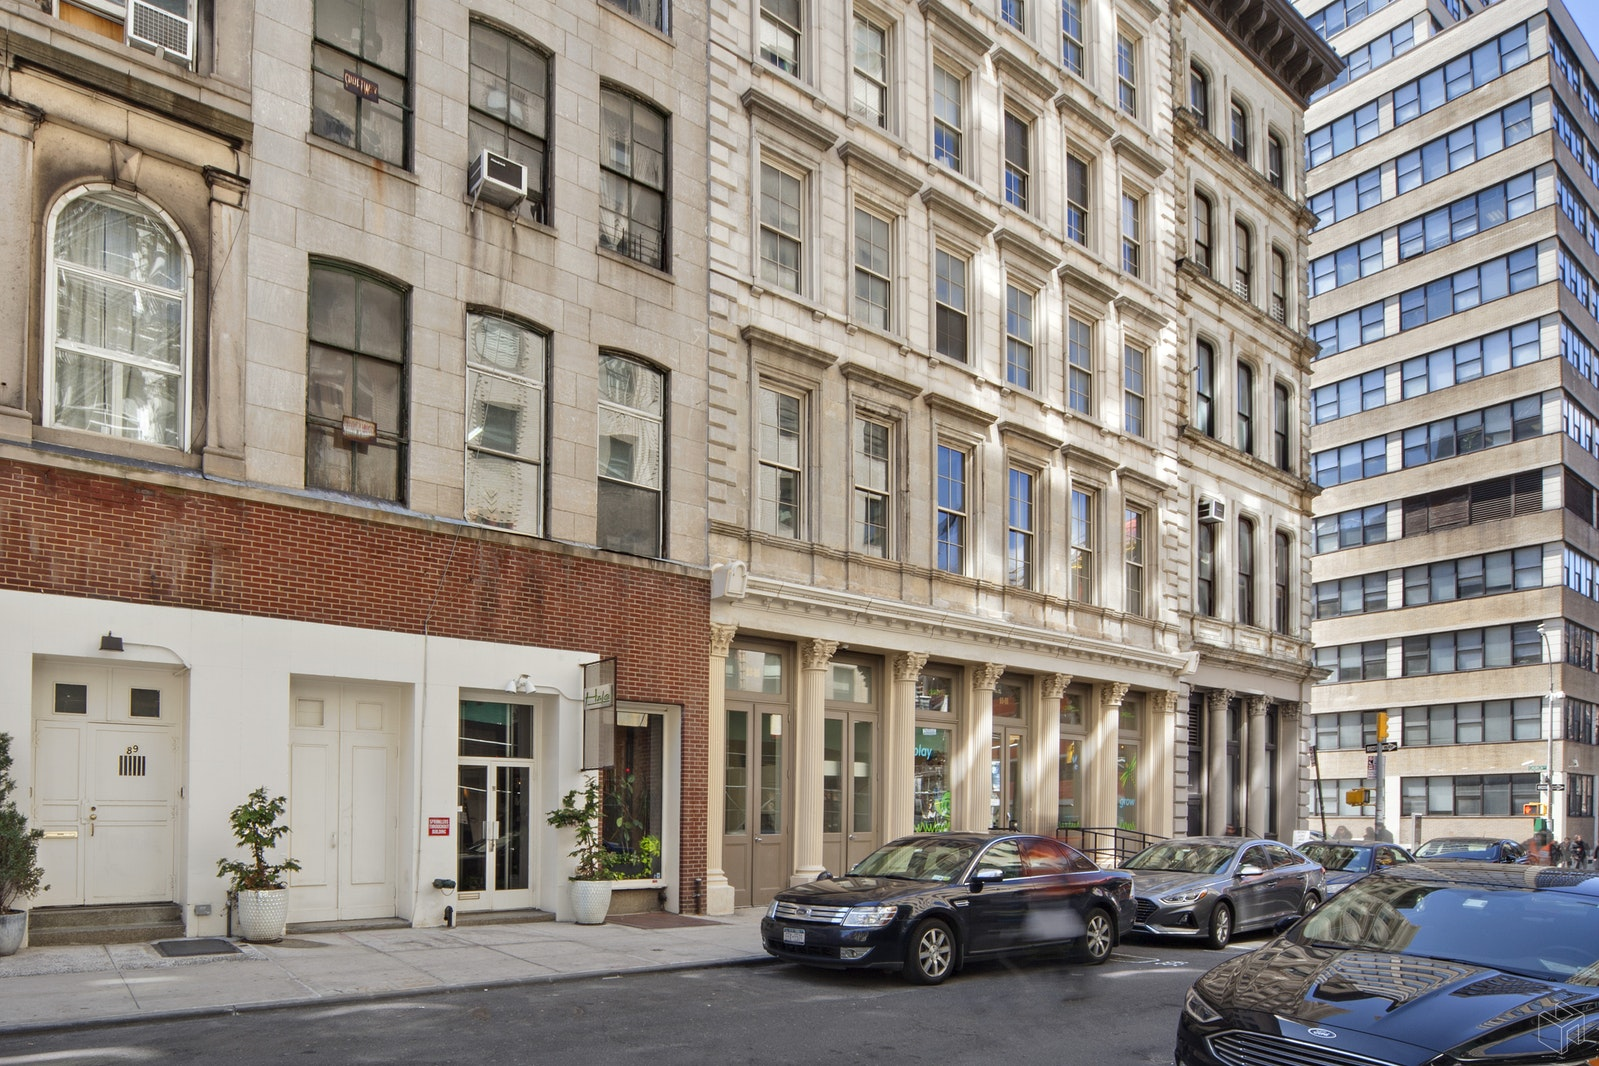 91 Franklin Street  5, Tribeca, NYC, 10013, $2,250,000, Property For Sale, ID# 18397362, Halstead